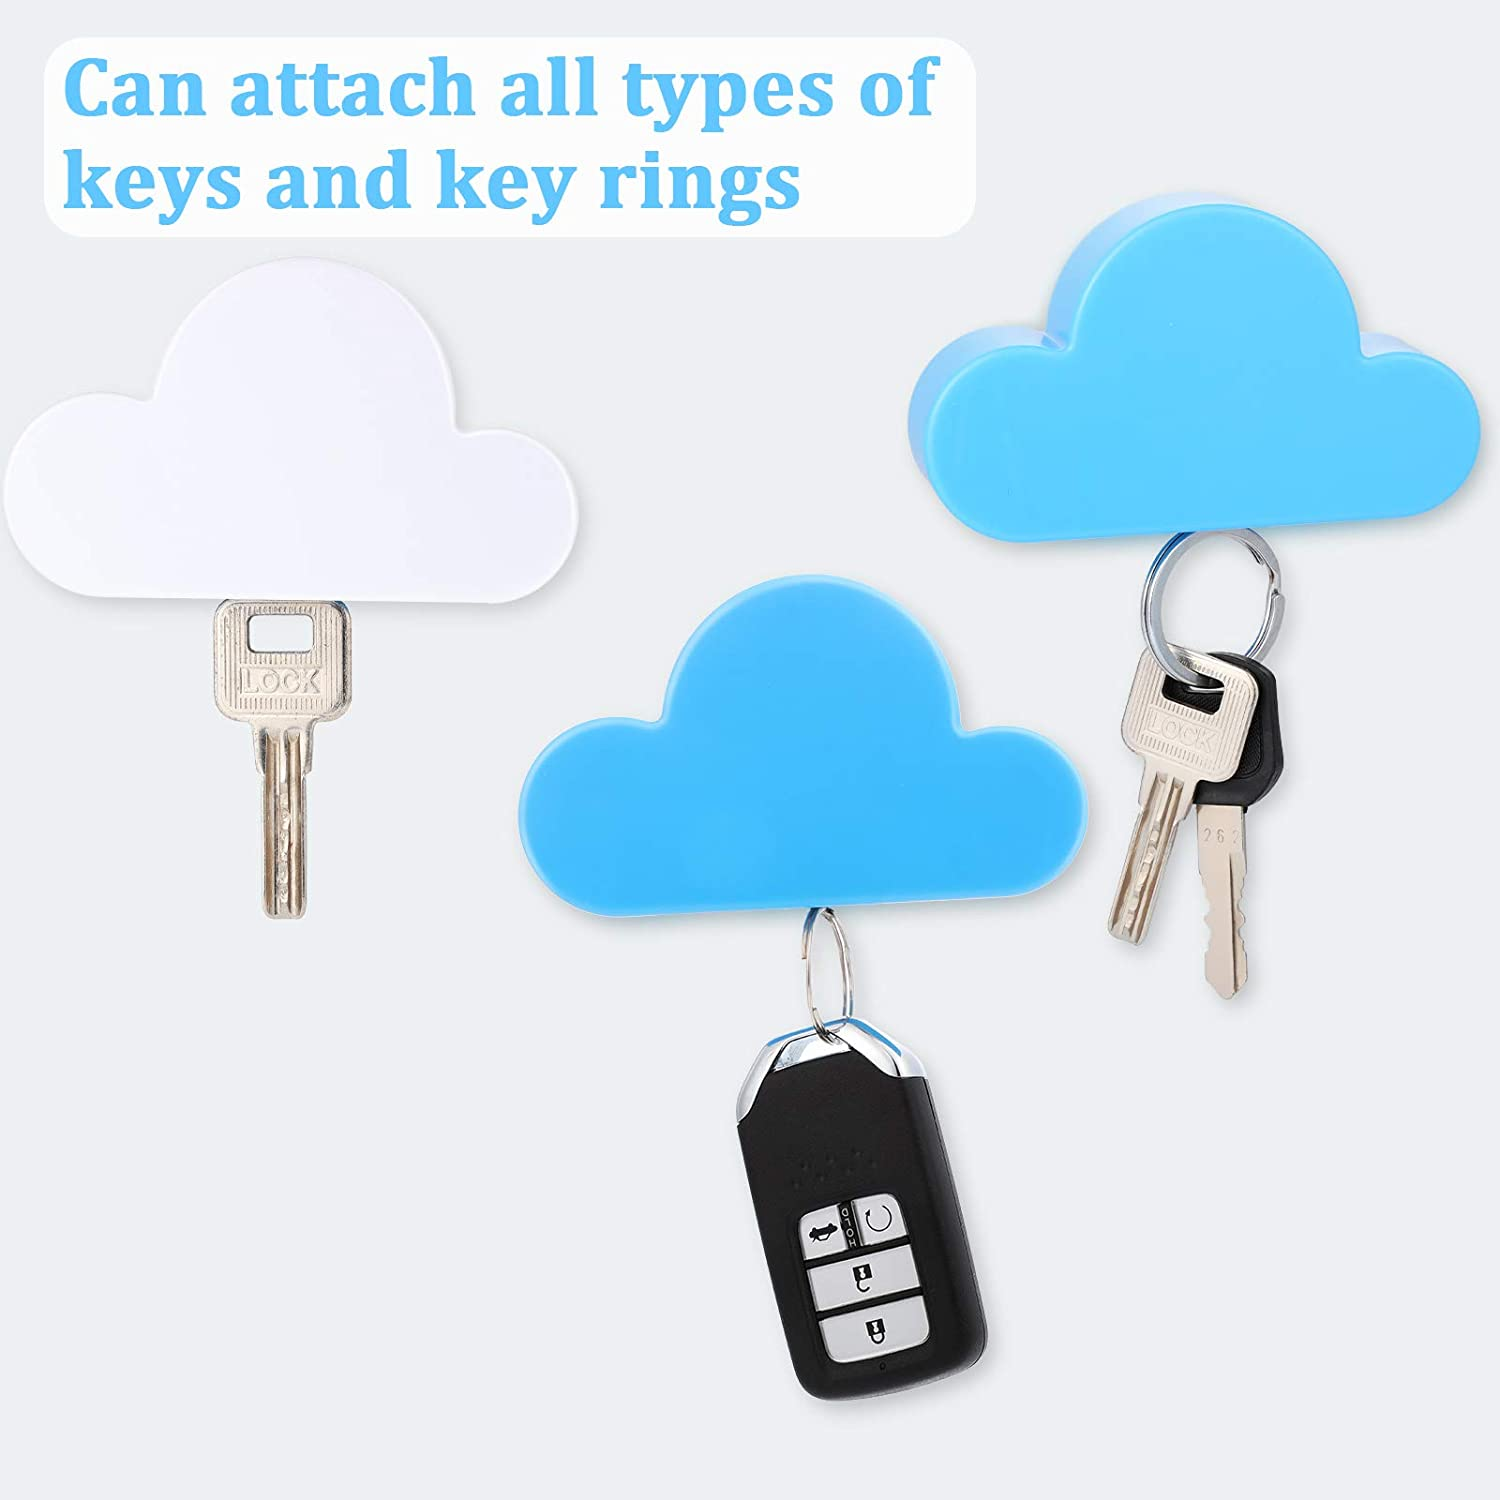 4 Pieces Cloud Magnetic Key Holder Cute Key Ring Holder Adhesive Wall Keychains Hooks Creative Key Chains Rack Organizer for Wall Door